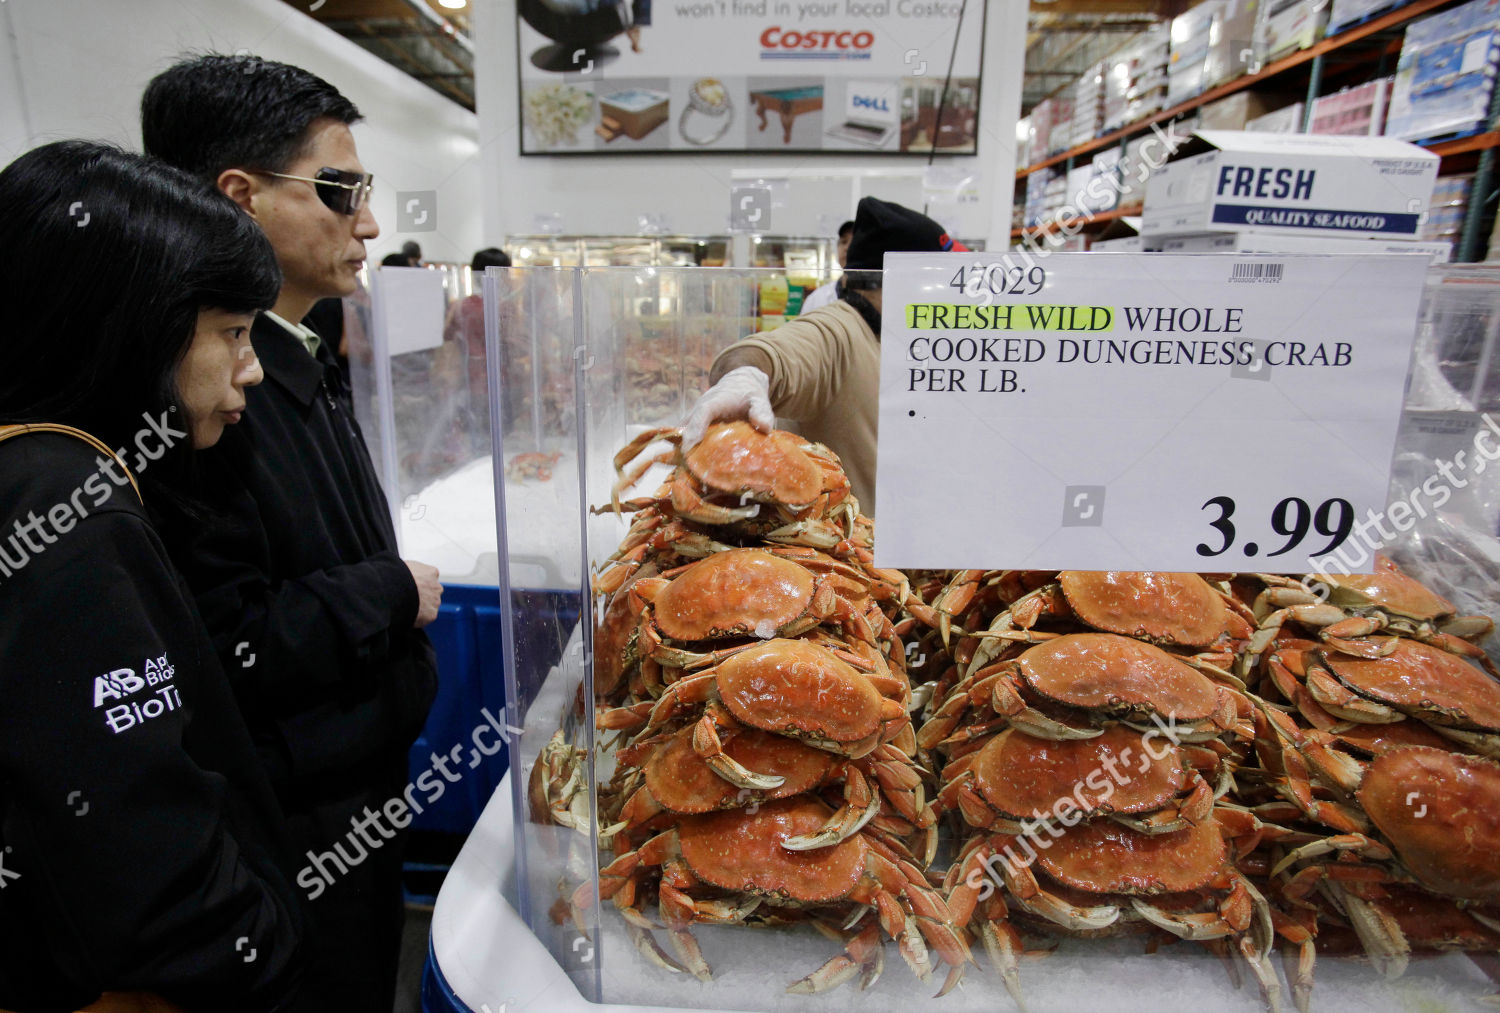 Customers look cooked Dungeness crab sale Costco Editorial